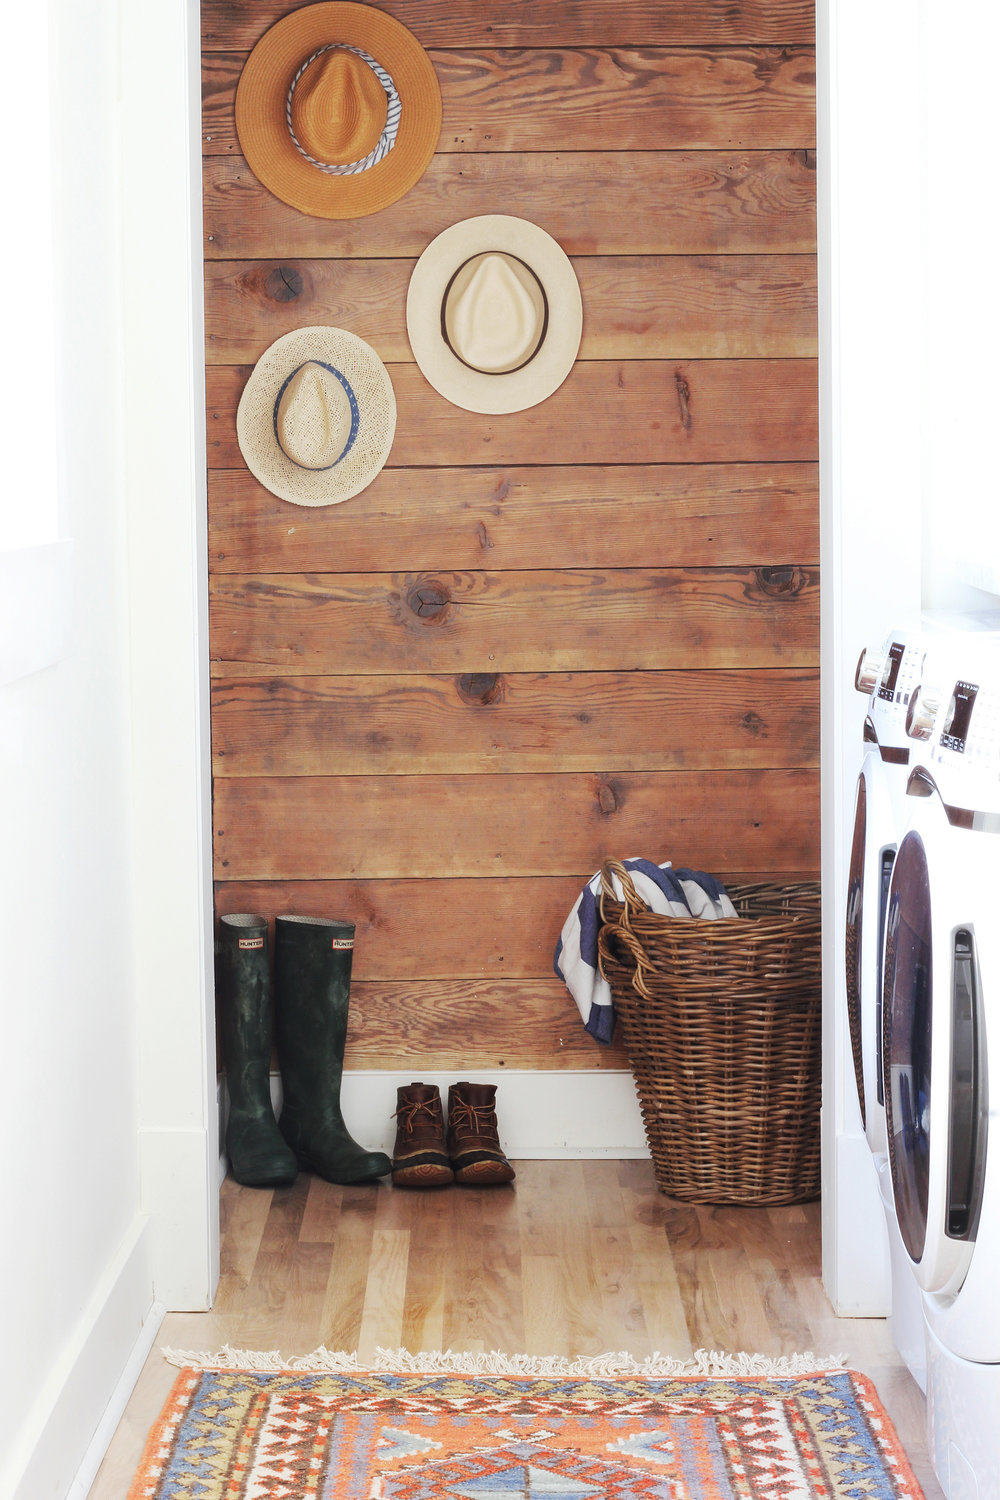 The Mudroom